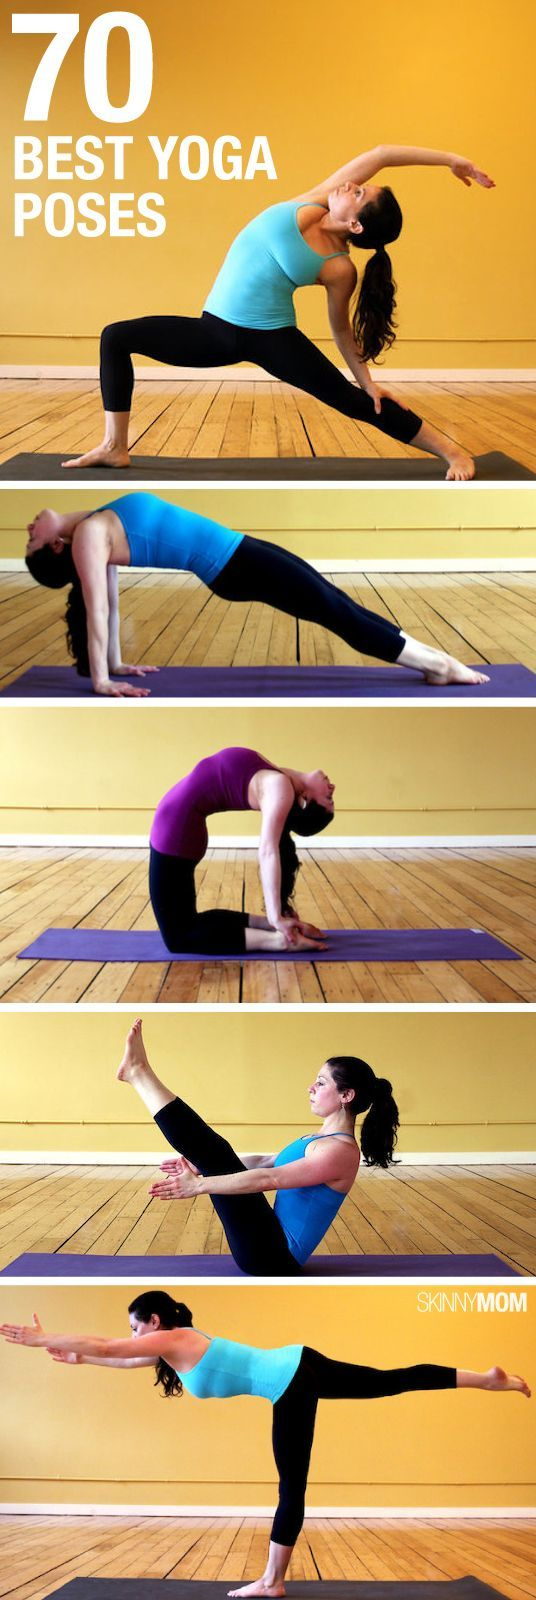 New to yoga? Here are a ton of yoga poses to try out and find your zen!